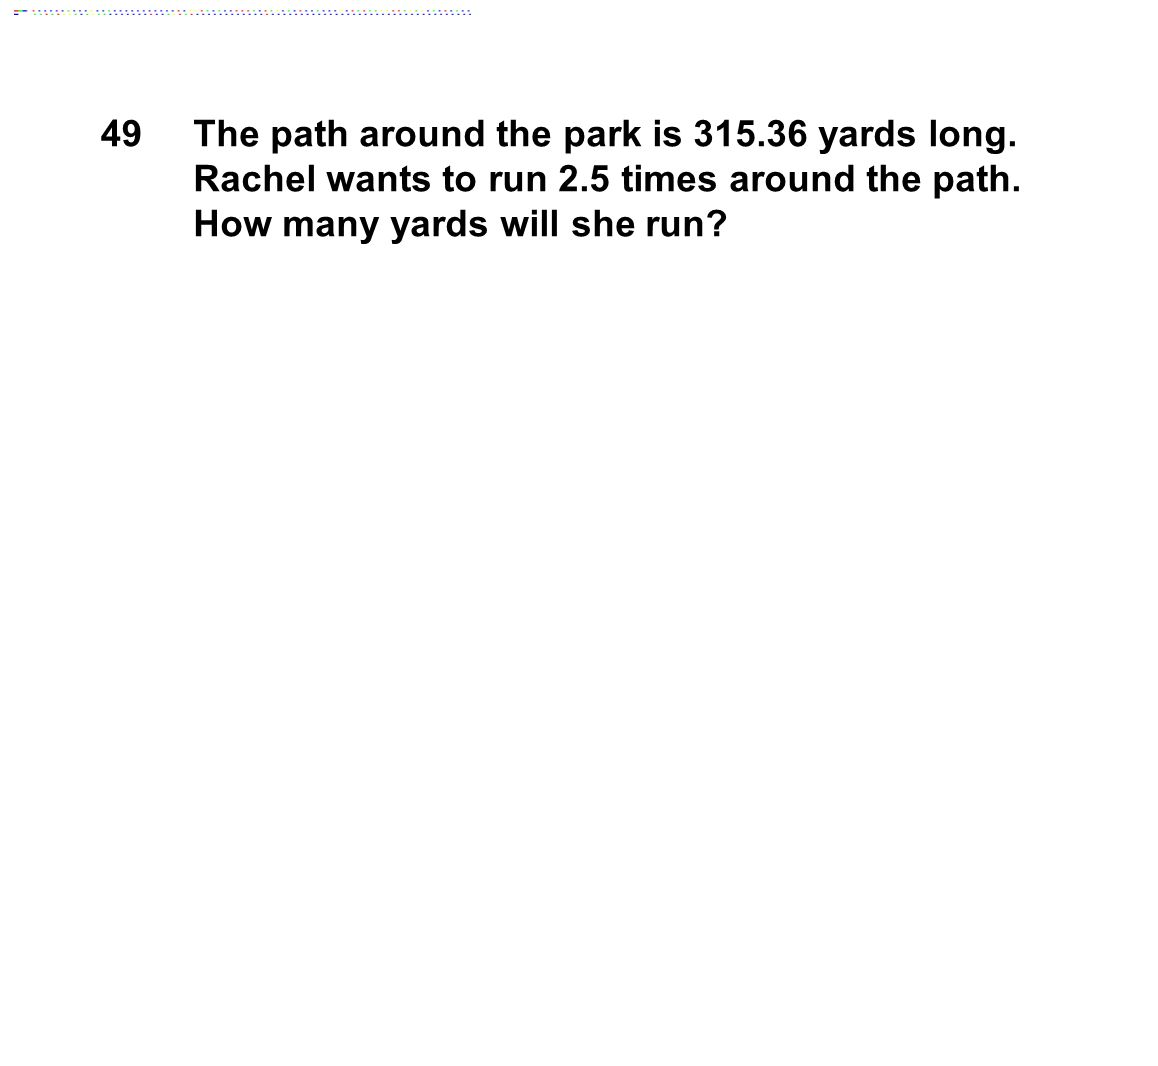 49 The path around the park is 315.36 yards long. Rachel wants to run 2.5 times around the path.